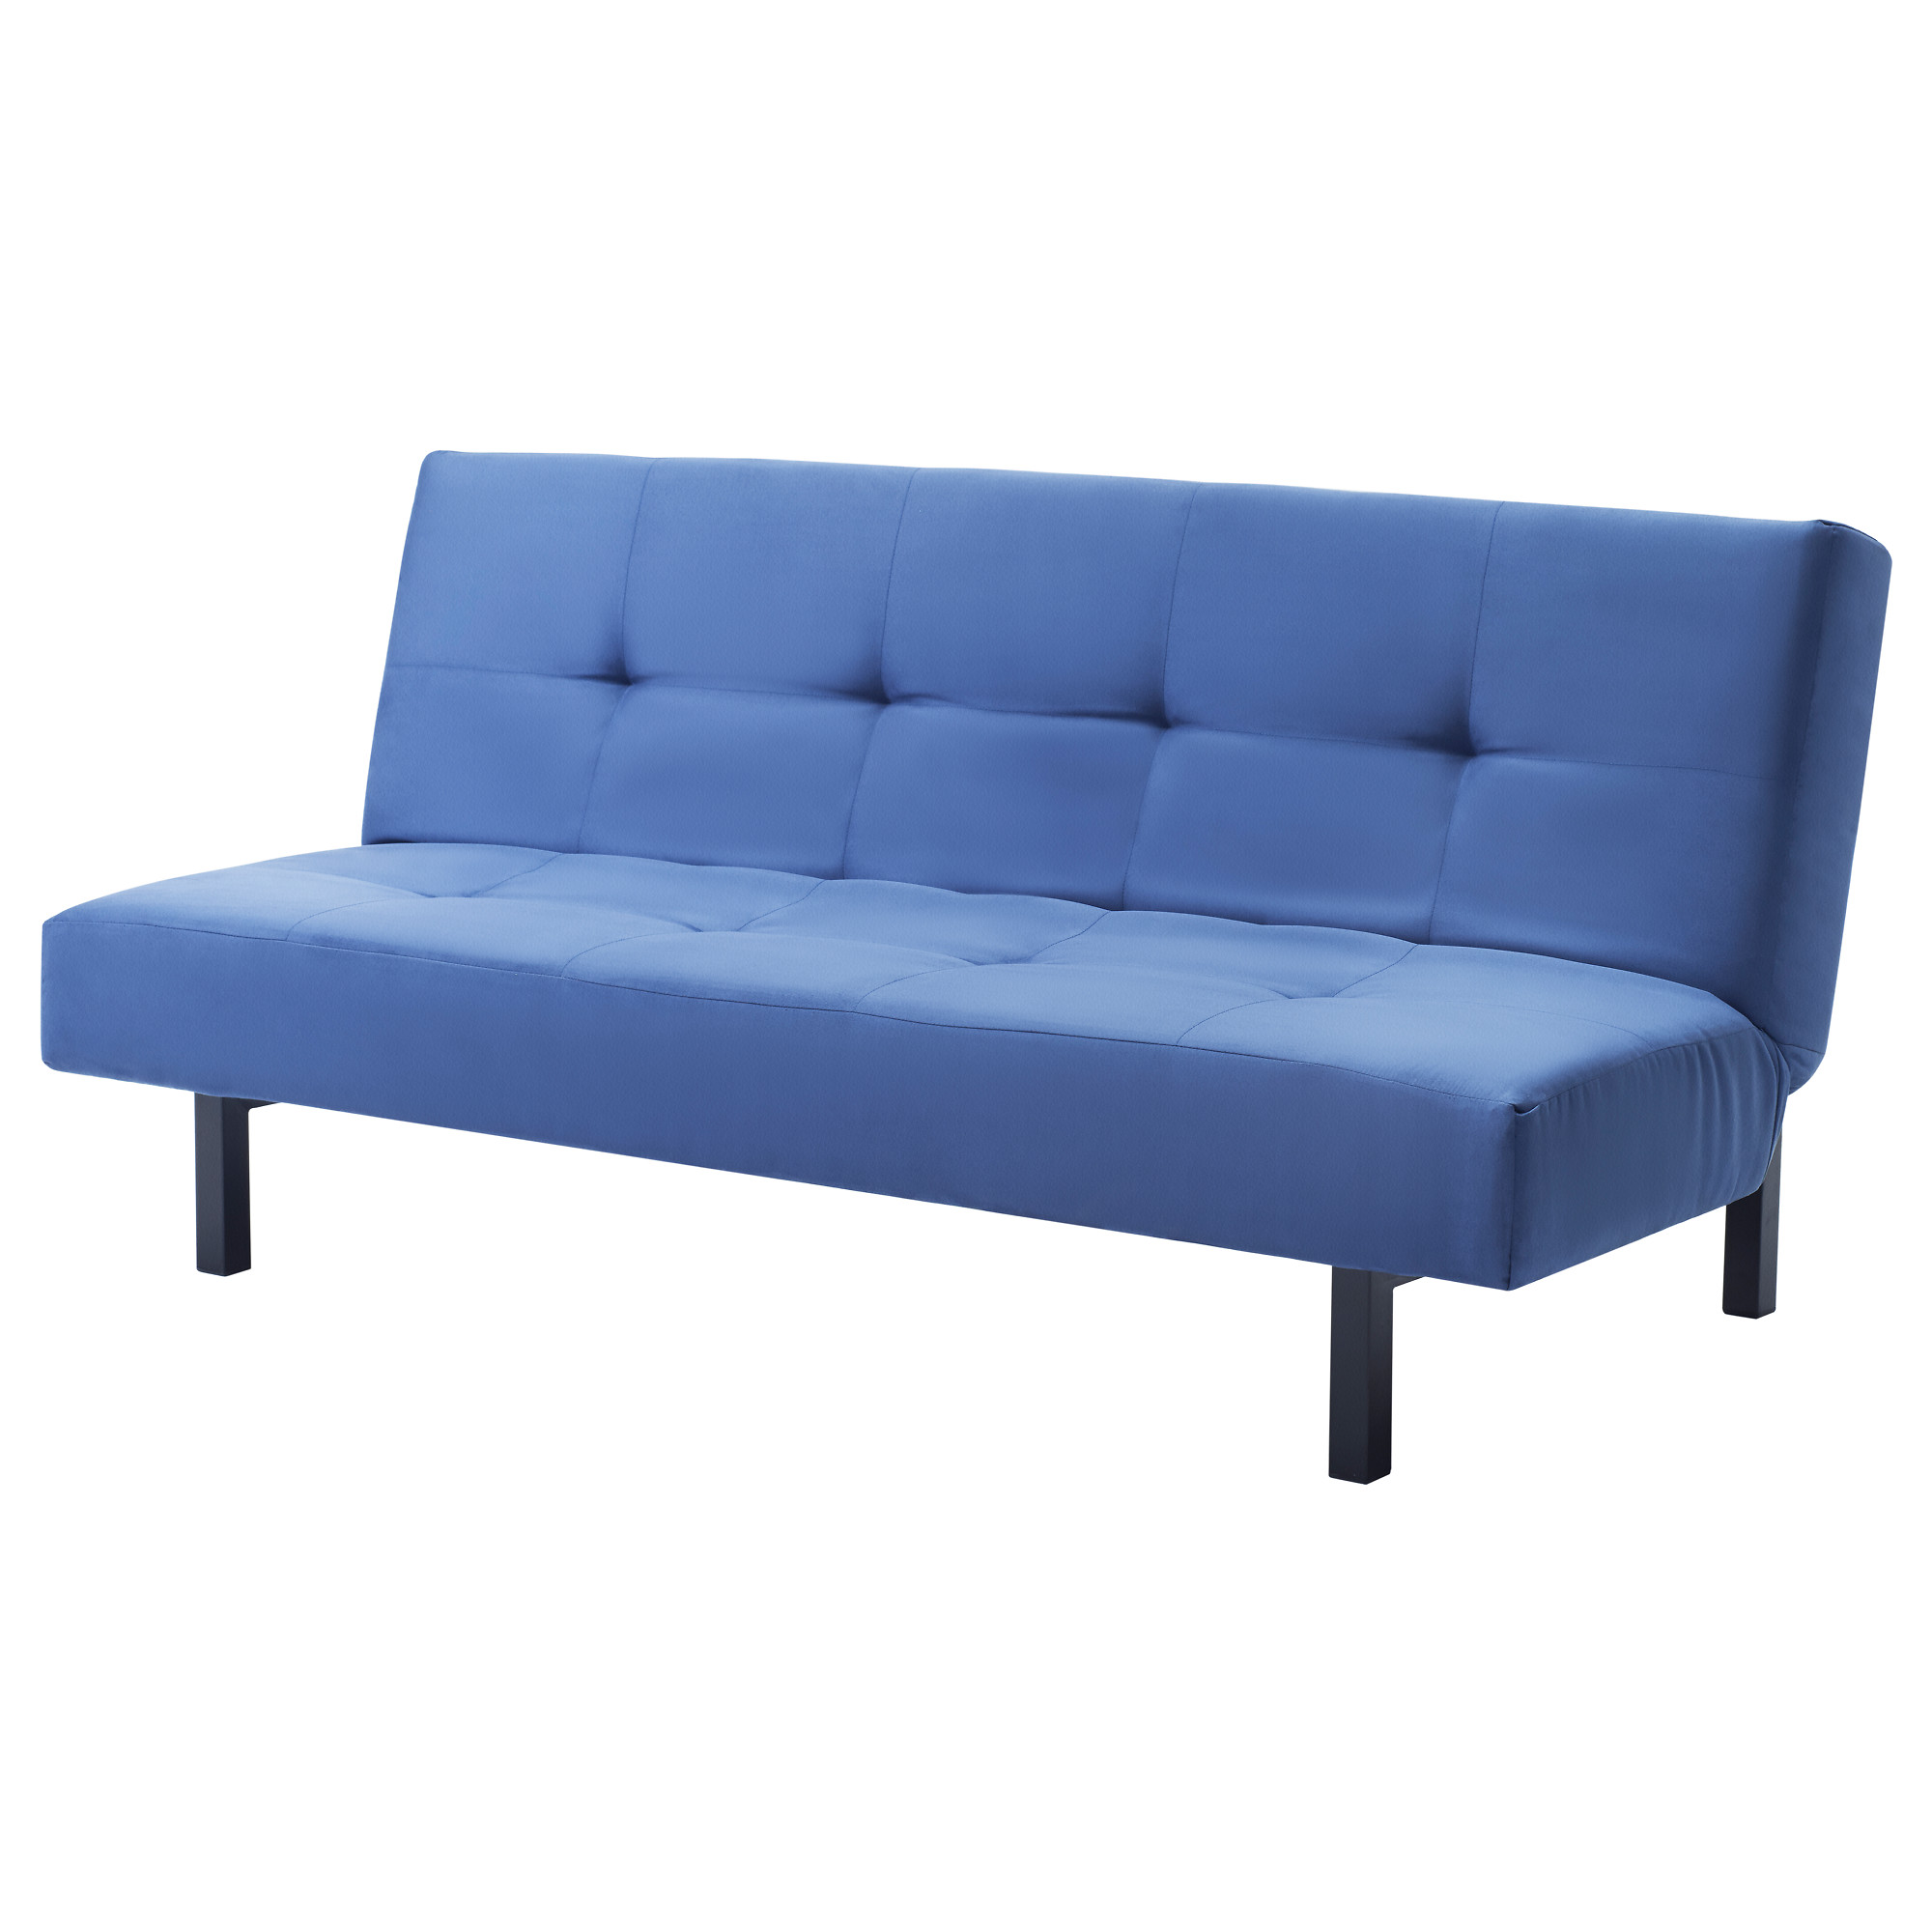 Best sofa sleepers ikea homesfeed Sofa sleeper loveseat